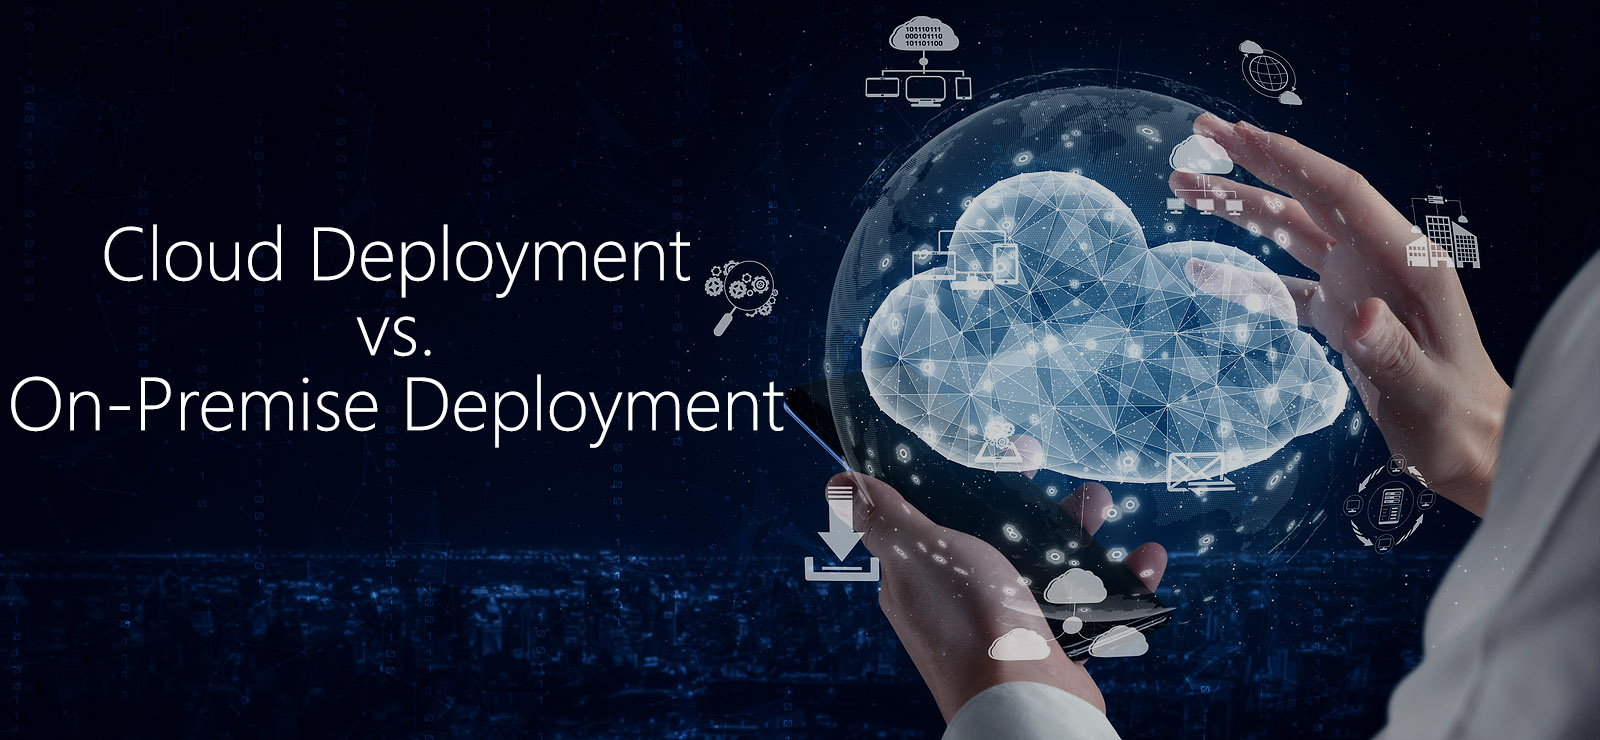 Cloud Deployment vs. On-Premise Deployment